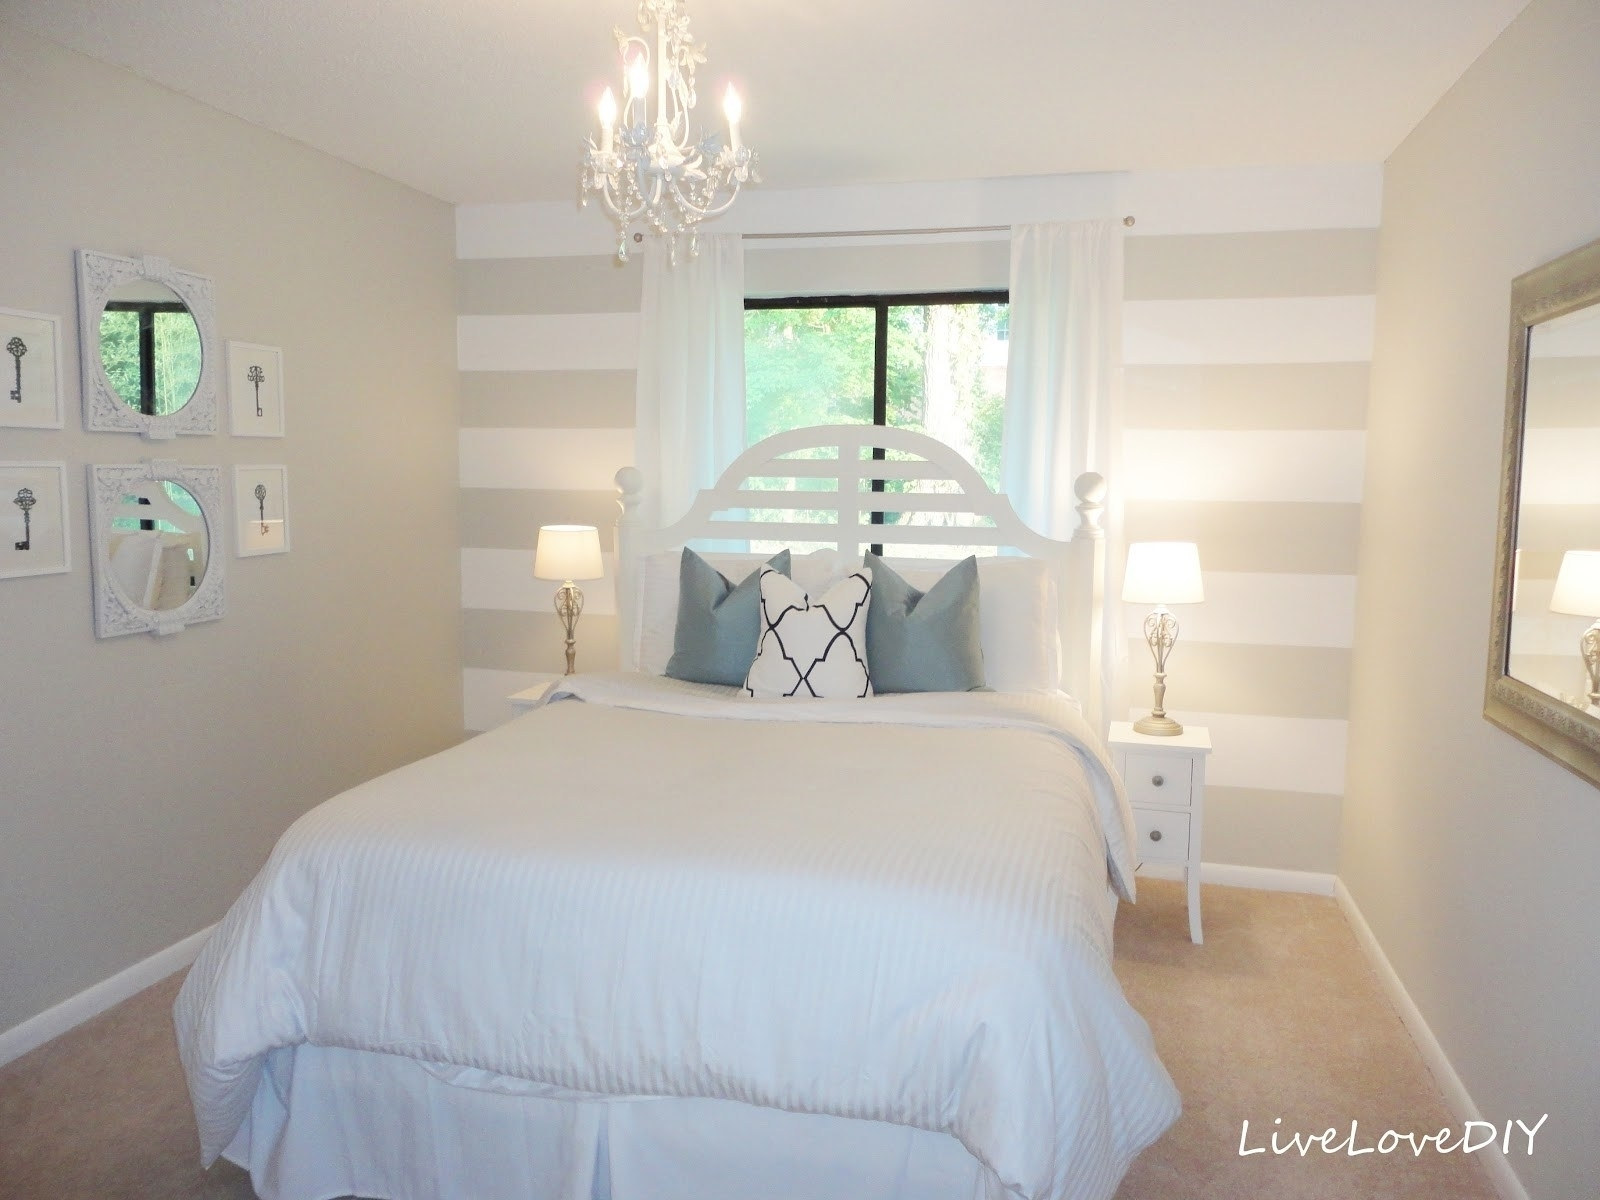 Bedroom Design: White Wood Accent Wall Fireplace Accent Wall Pertaining To Newest Wallpaper Wall Accents (View 7 of 15)